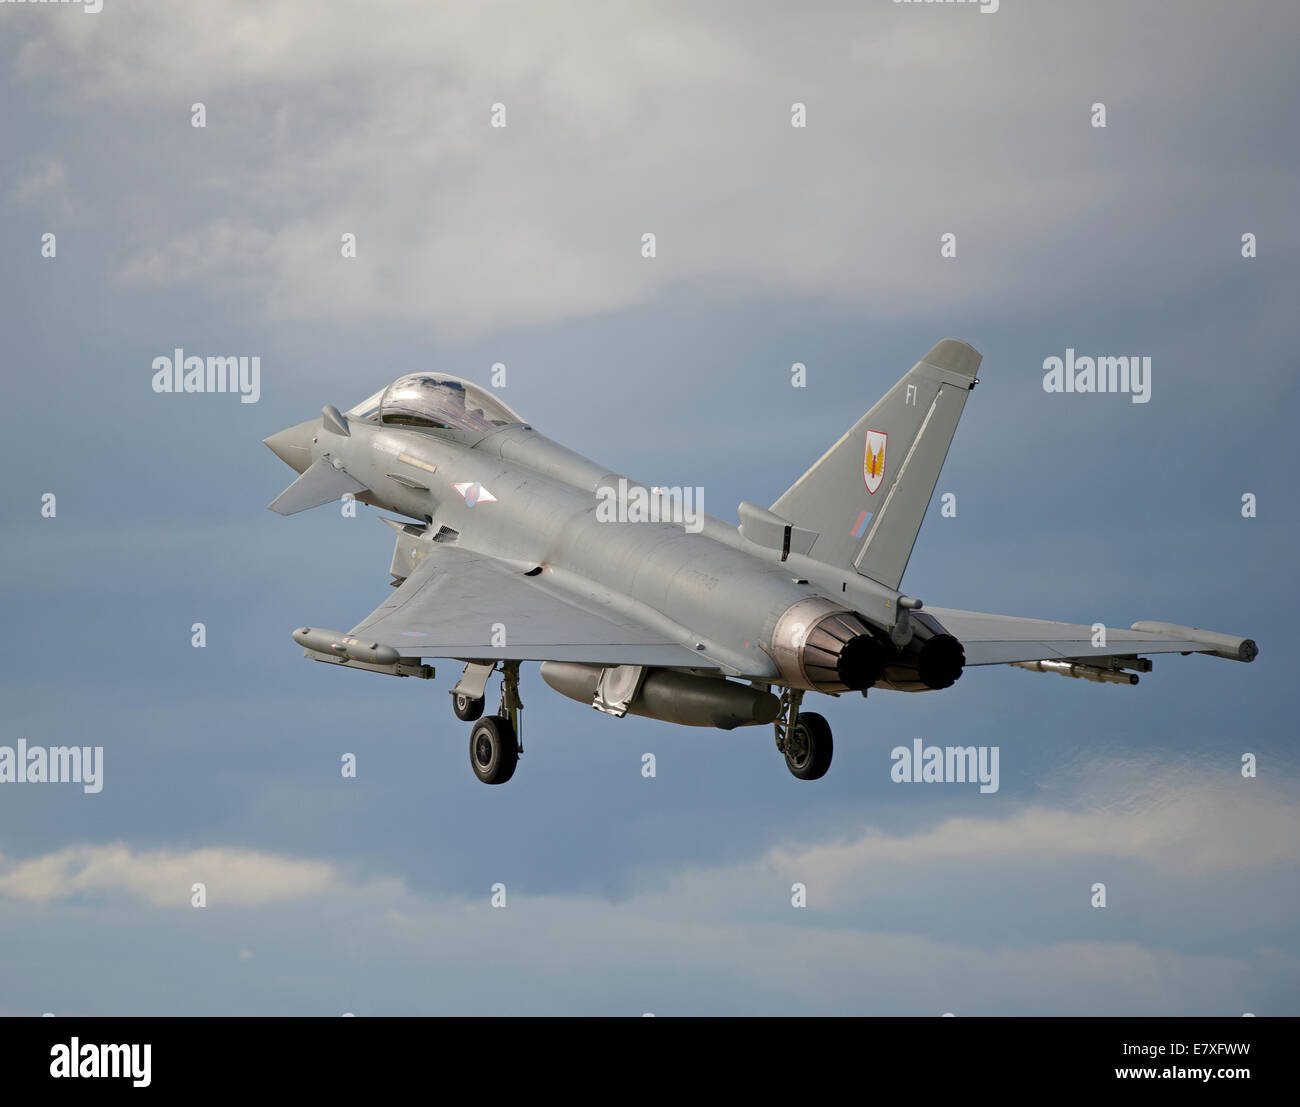 Eurofighter Typhoon FRG4 on approach to RAF Lossiemouth, Morayshire.  SCO 9134 - Stock Image